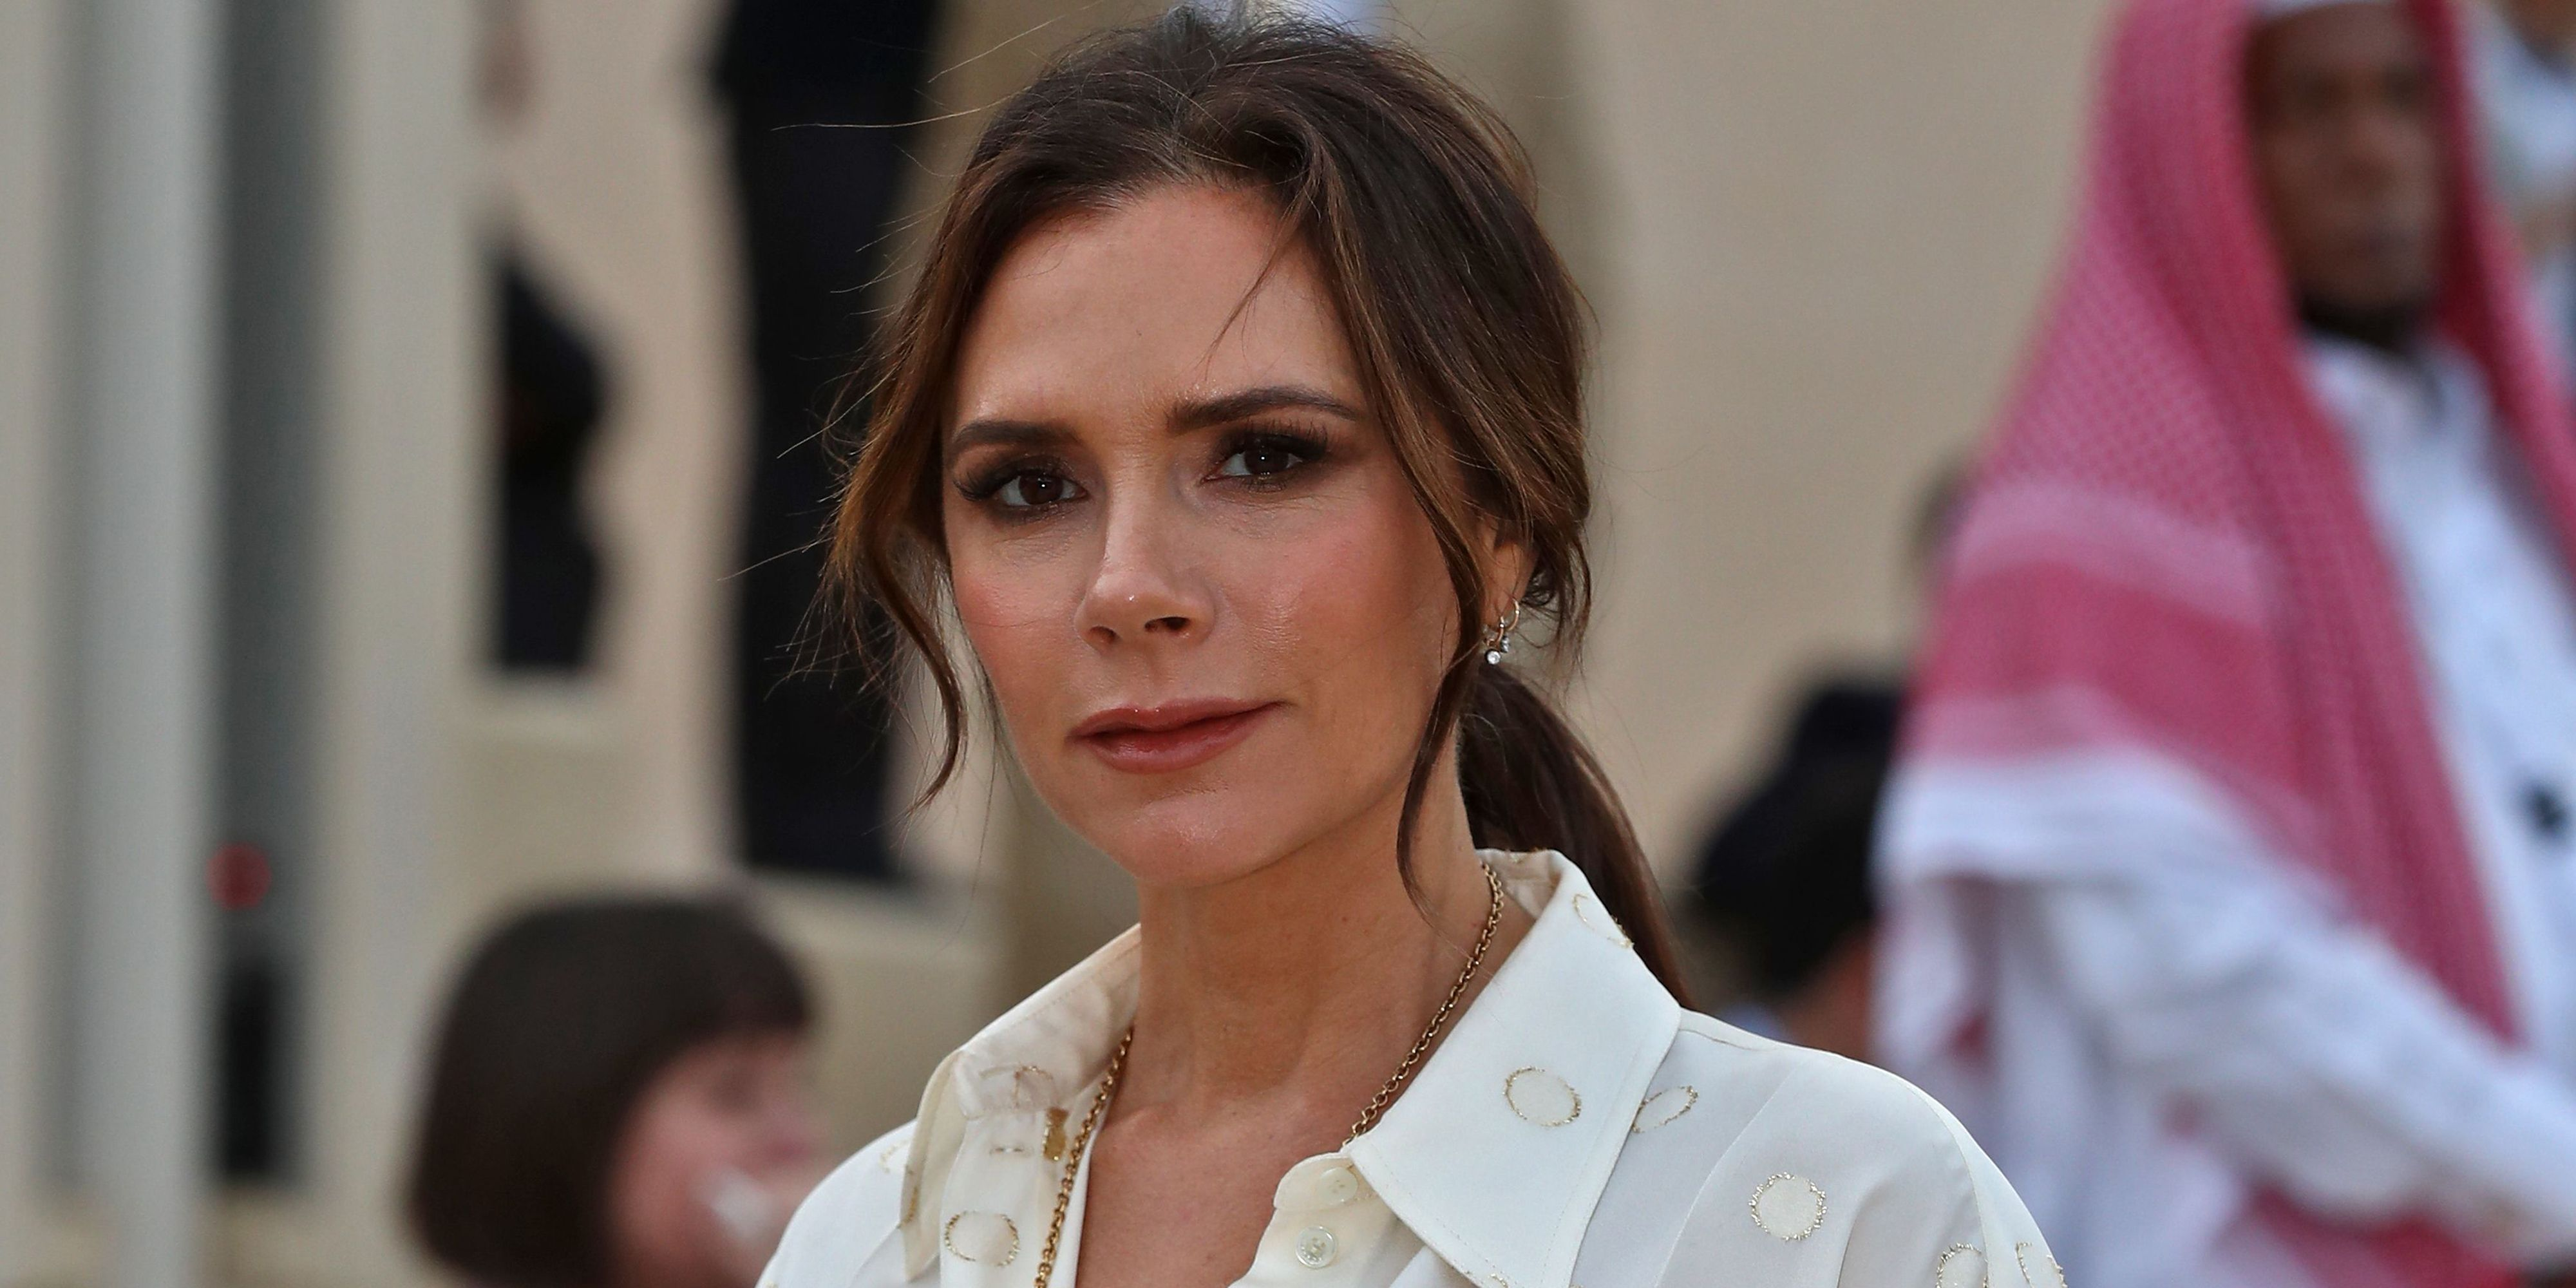 Victoria Beckham Beauty has officially arrived